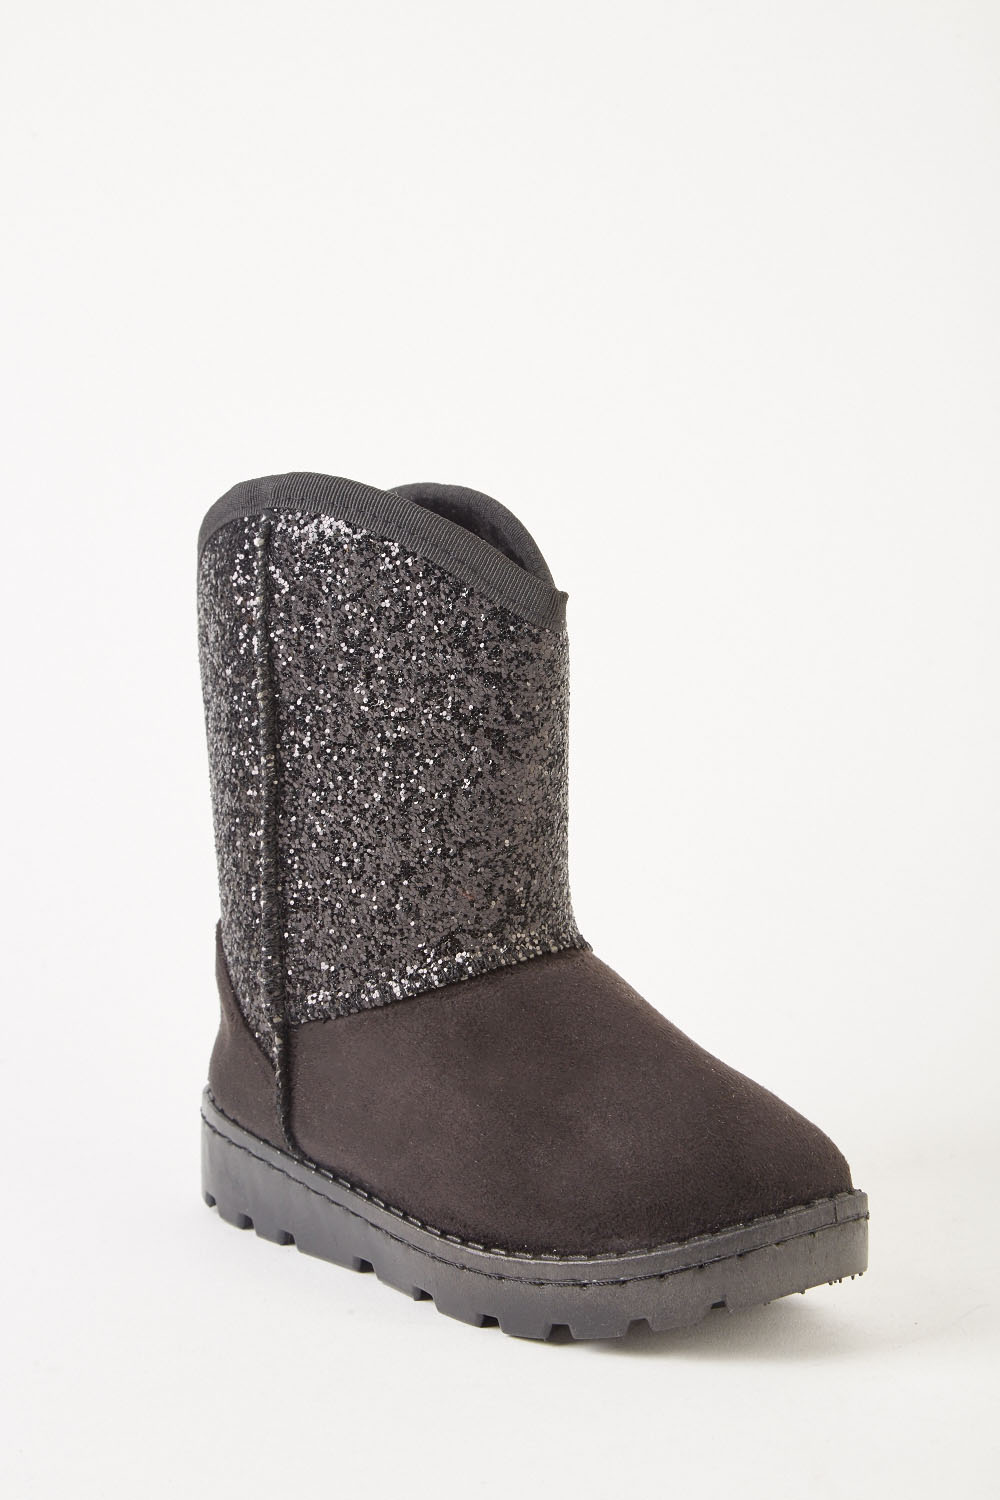 1bfc215ea Kids Suedette Contrasted Winter Boots - Black - Just £5